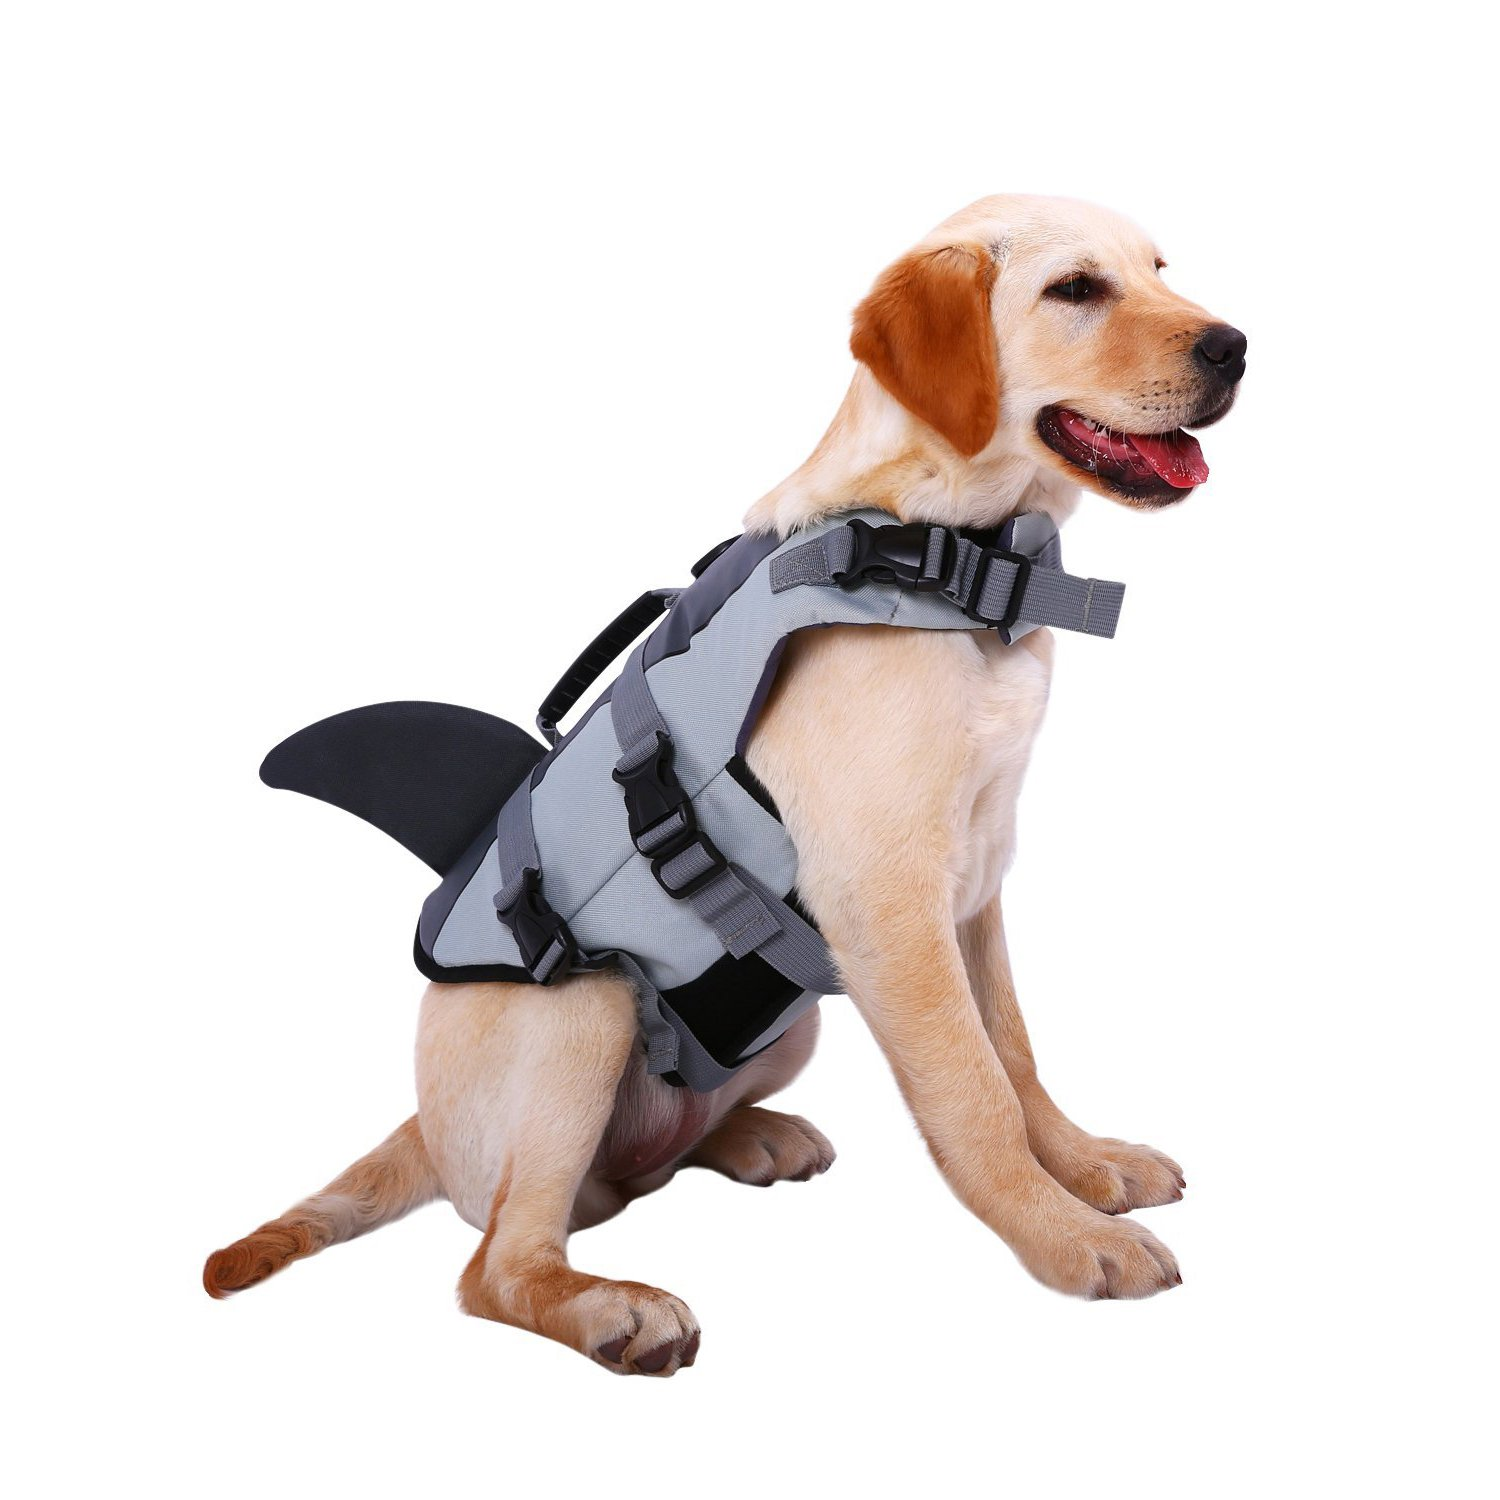 Dog Life Jackets, Ripstop Pet Floatation Life Vest for Small, Middle, Large Size Dogs, Dog Lifesaver Preserver Swimsuit for Water Safety at The Pool, Beach, Boating (Large, Grey Shark) by Bess Bridal